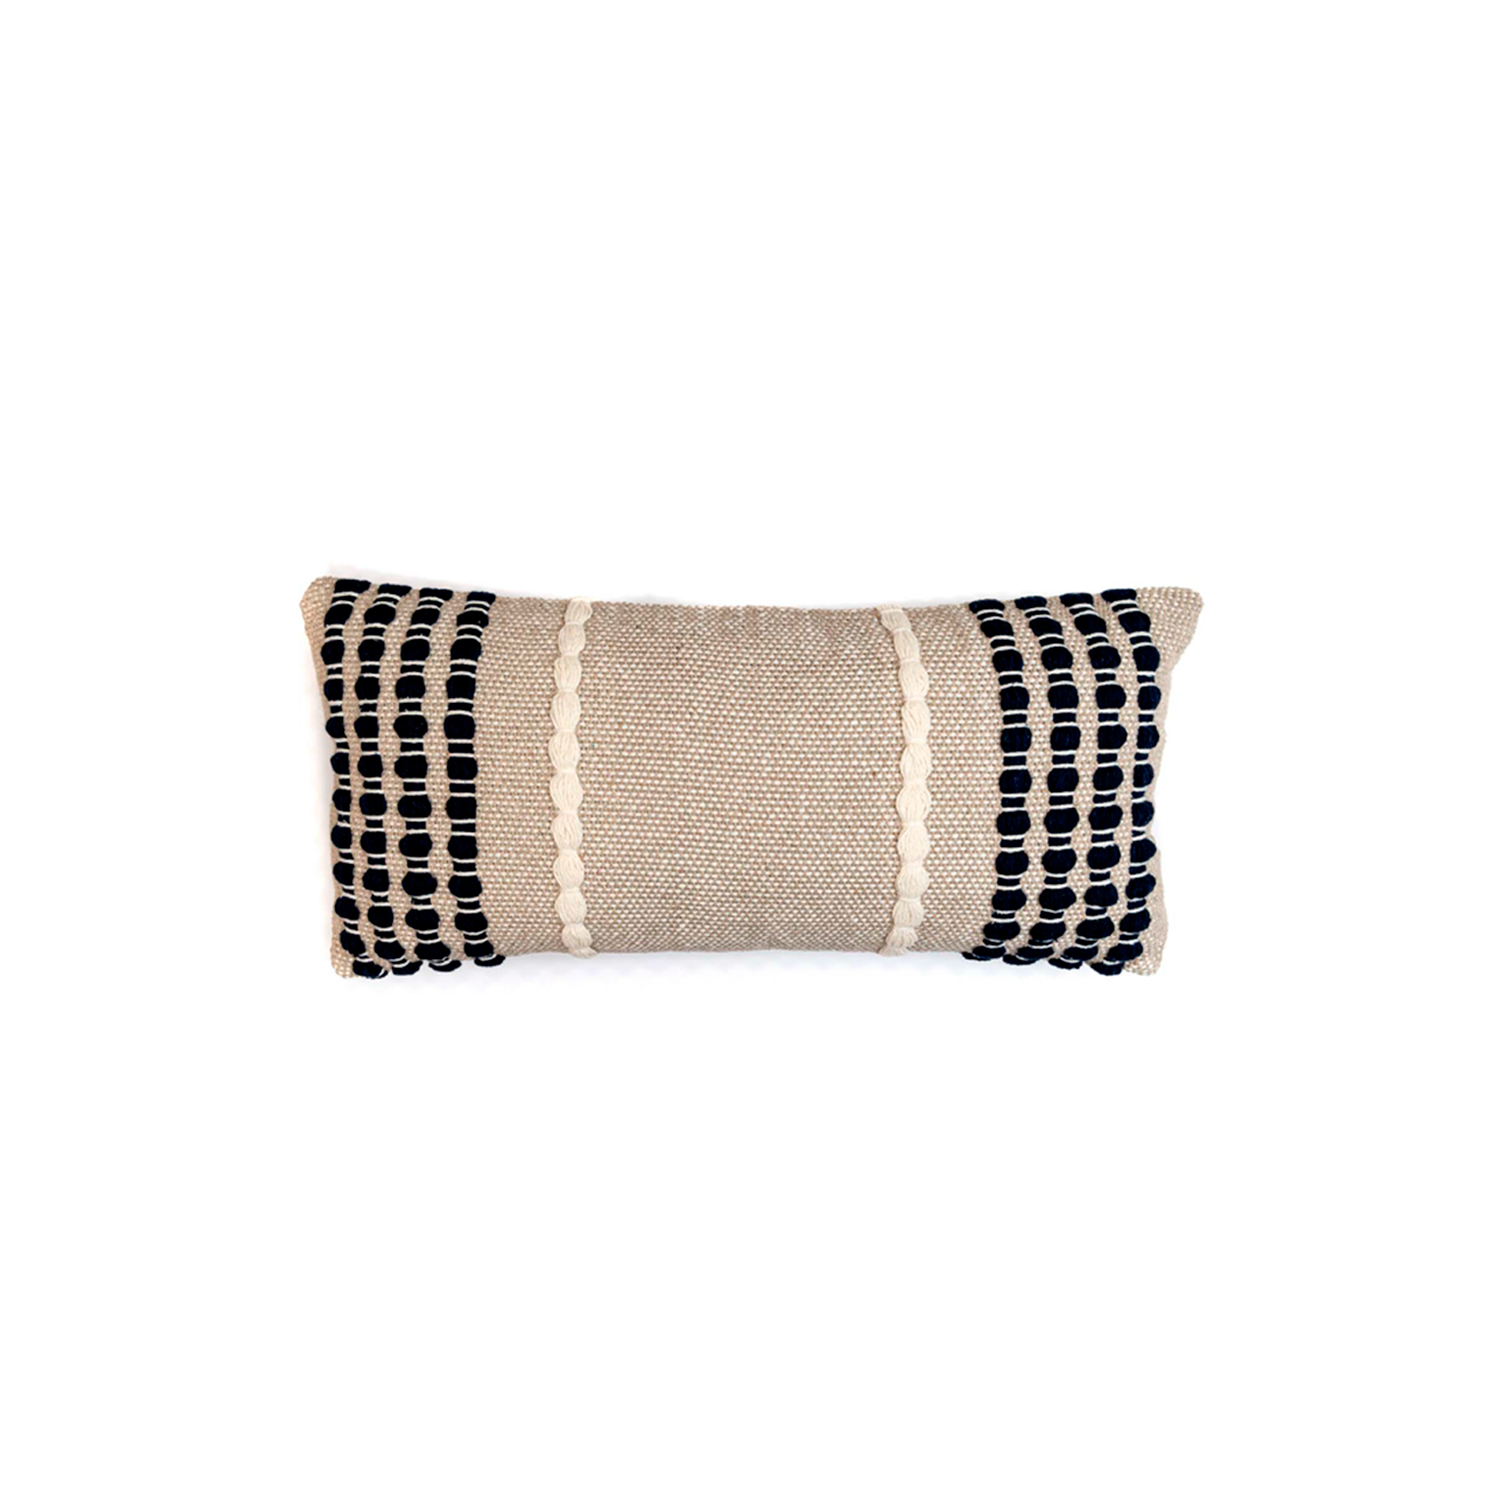 Lua Noite Cotton Cushion Small - The Flame Sustainable Collection is made from a selection of organic cotton fibres, eco-friendly, hand-woven or elaborated using traditional hand-loom techniques. Carefully knitted within a trained community of women that found in their craft a way to provide their families.  This collection combines Elisa Atheniense mission for responsible sourcing and manufacturing. Each piece is meticulously hand-loom by artisans who practised methods with age-old techniques. With a minimal electricity impact, each item crafted is therefore unique and exclusive. Weavers and artisans are the ultimate lifelines of Elisa Atheniense Home Products.  The hand woven cotton, washable cushion cover is made in Brazil and the inner cushion is made in the UK.   | Matter of Stuff